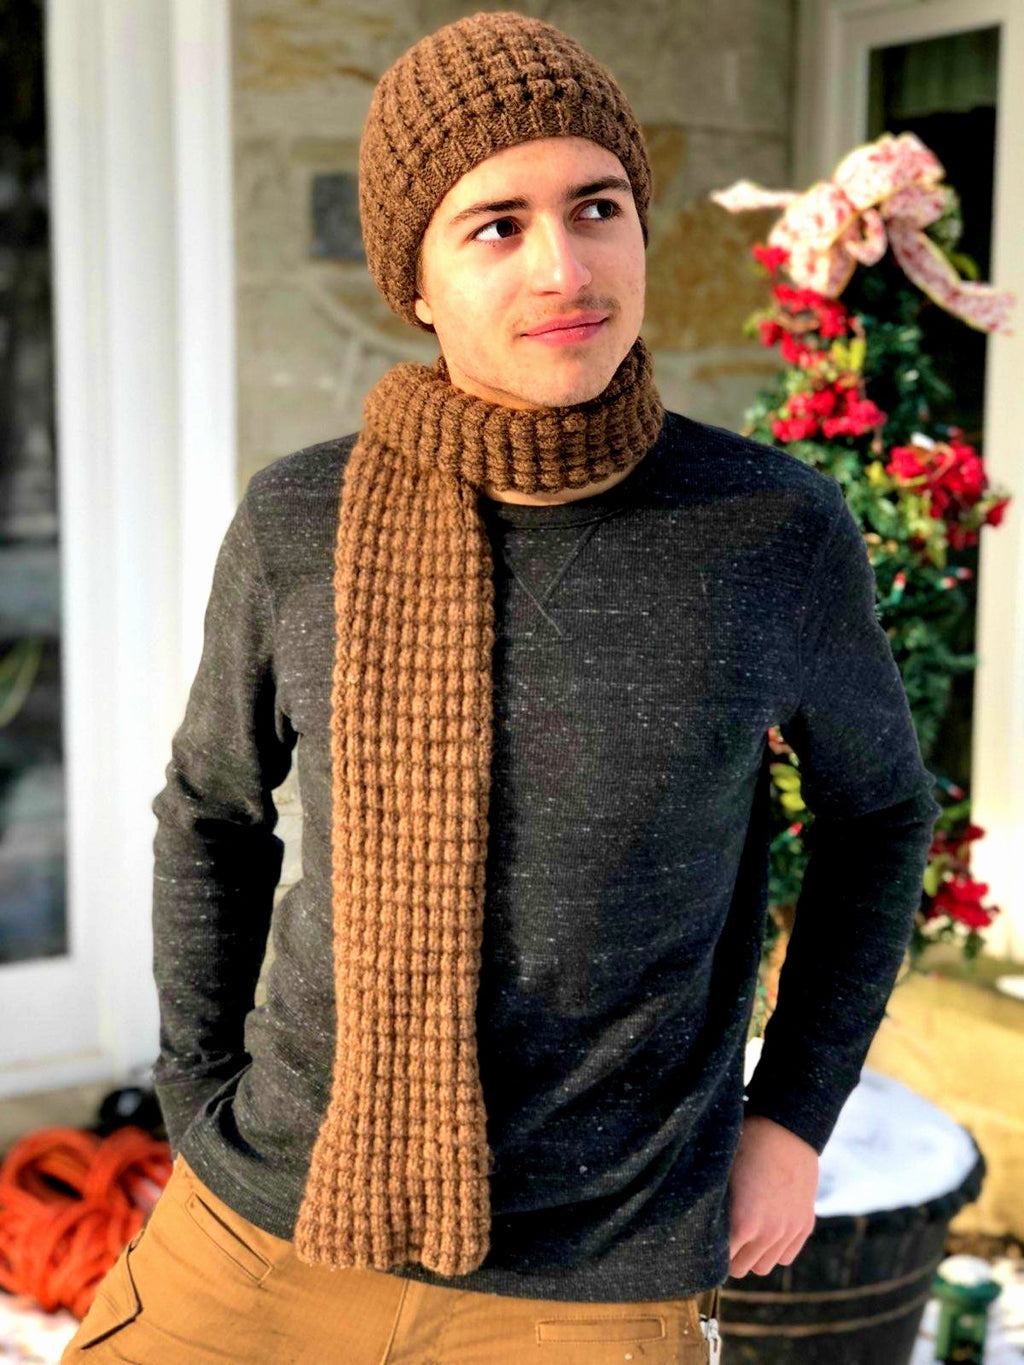 Drop Stitch Hat and Scarf - Designed by Kathy Zimmerman